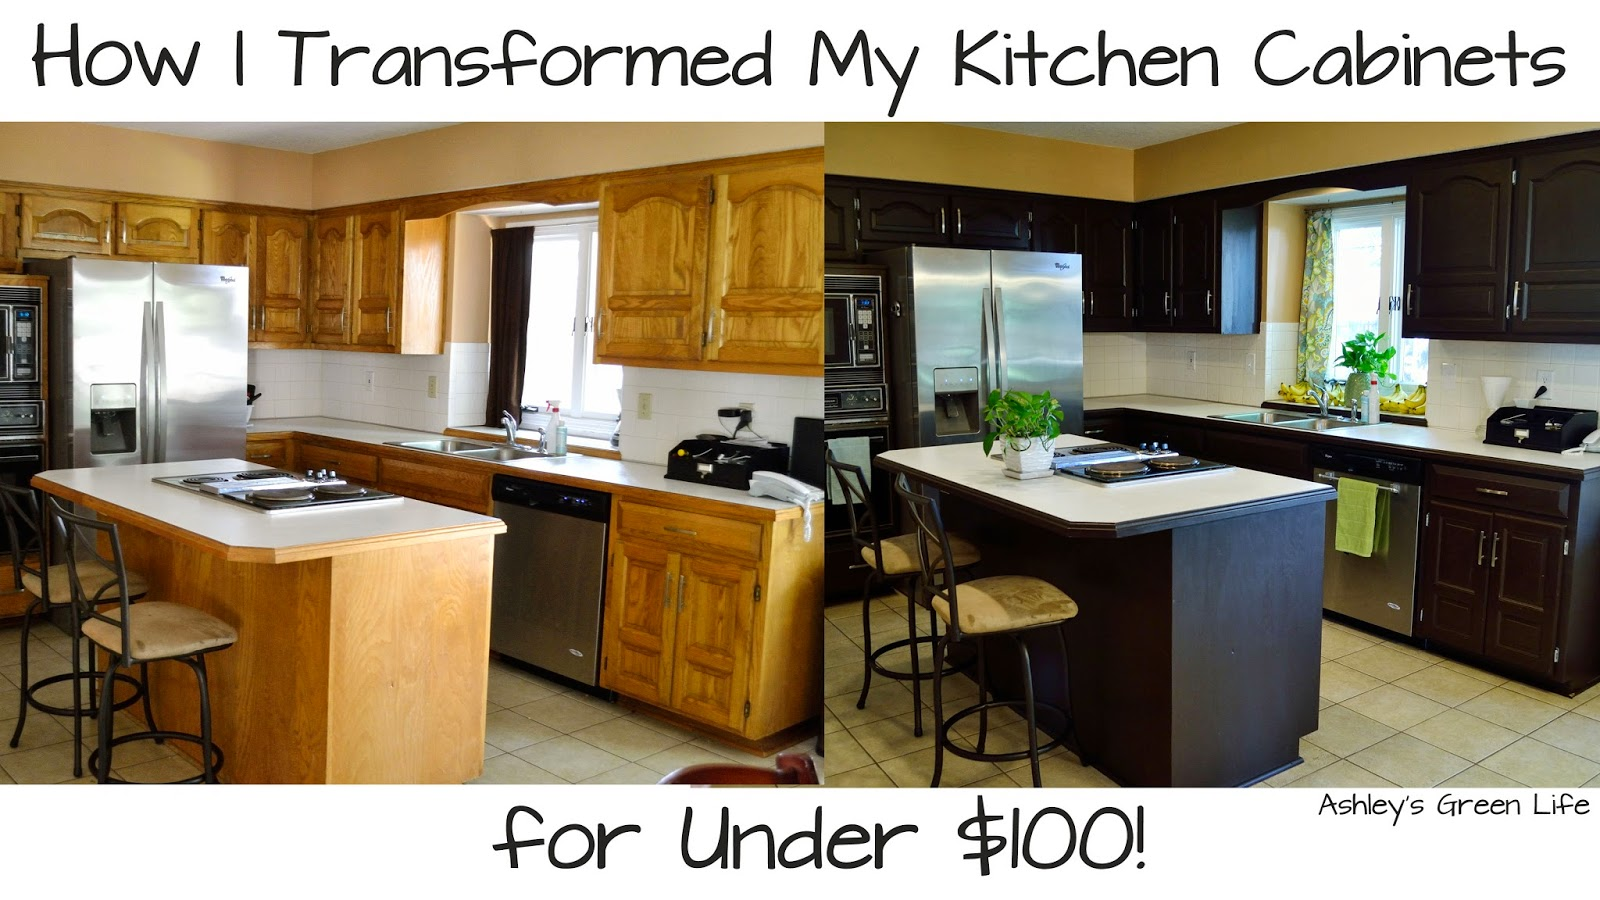 Building Kitchen Cabinets Video Ashley 39s Green Life How I Transformed My Kitchen Cabinets